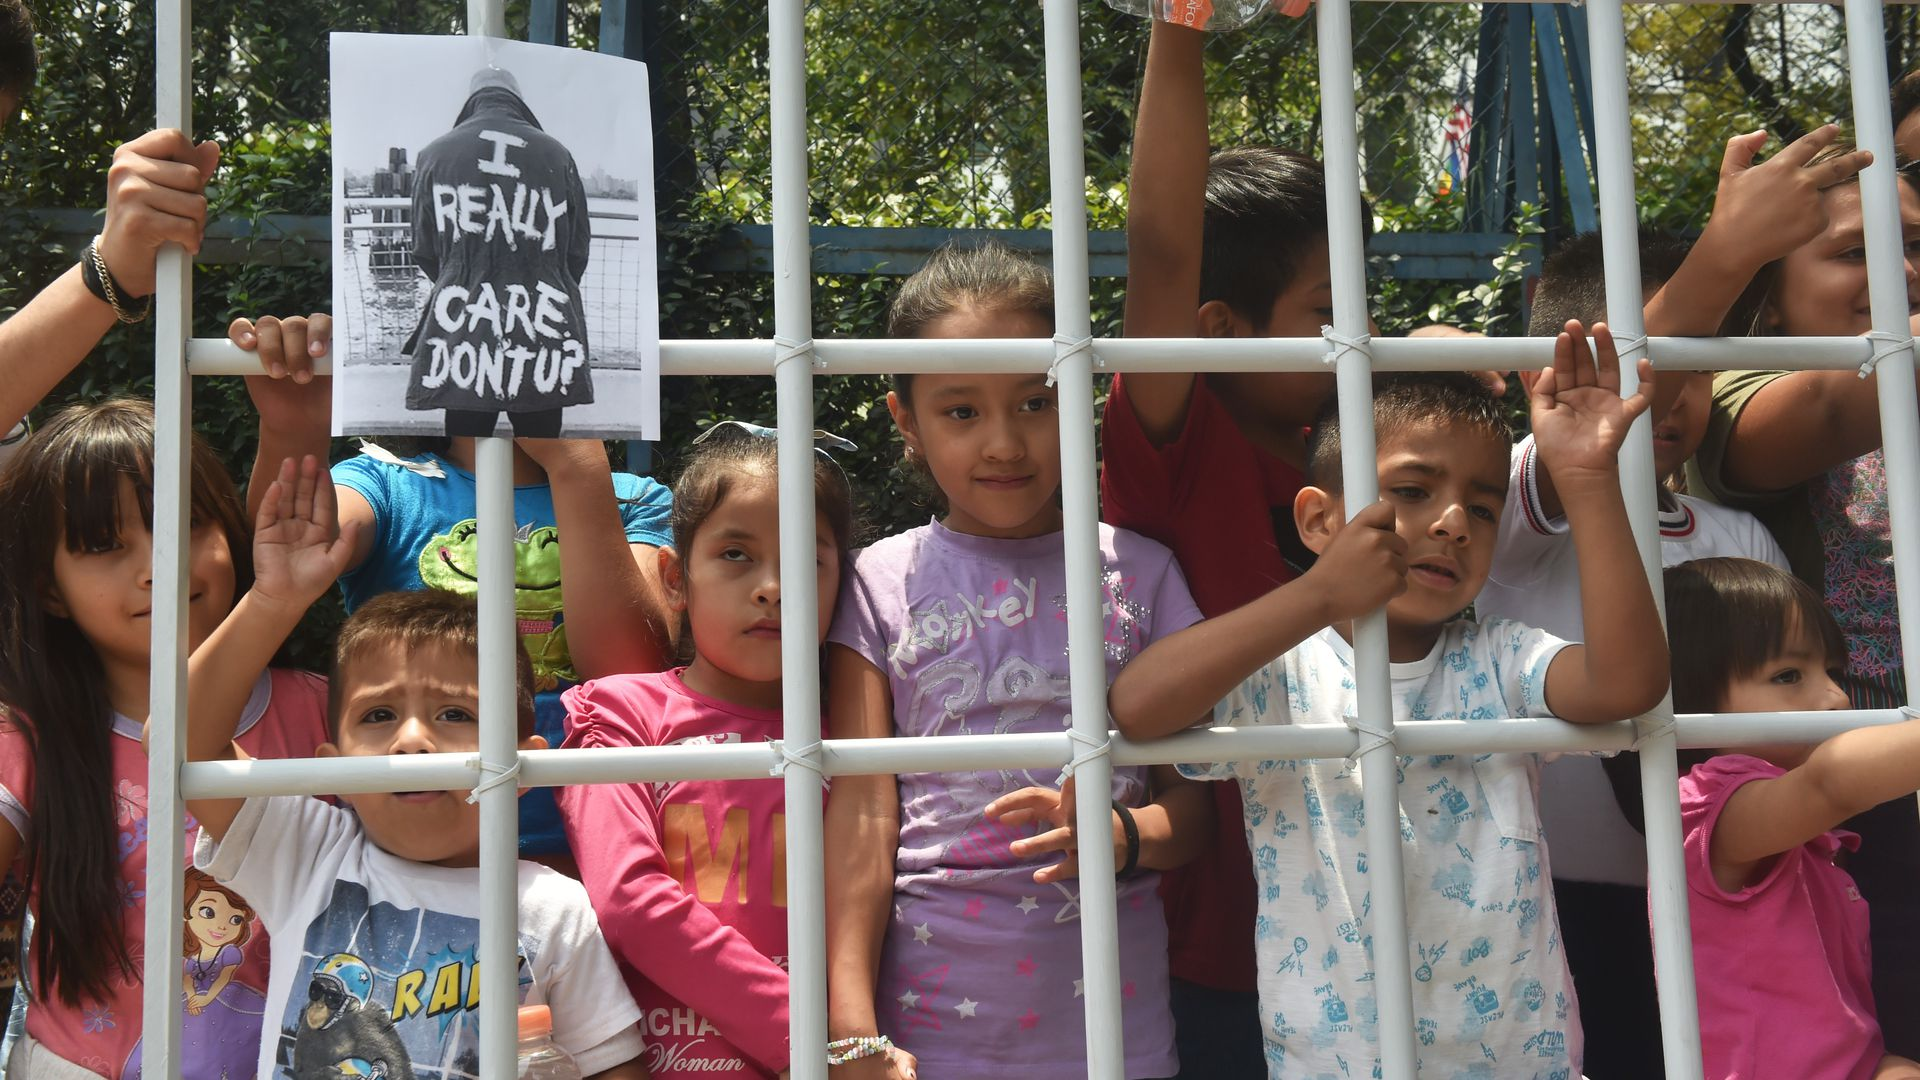 children protesting family separation by standing behind fake jail bars